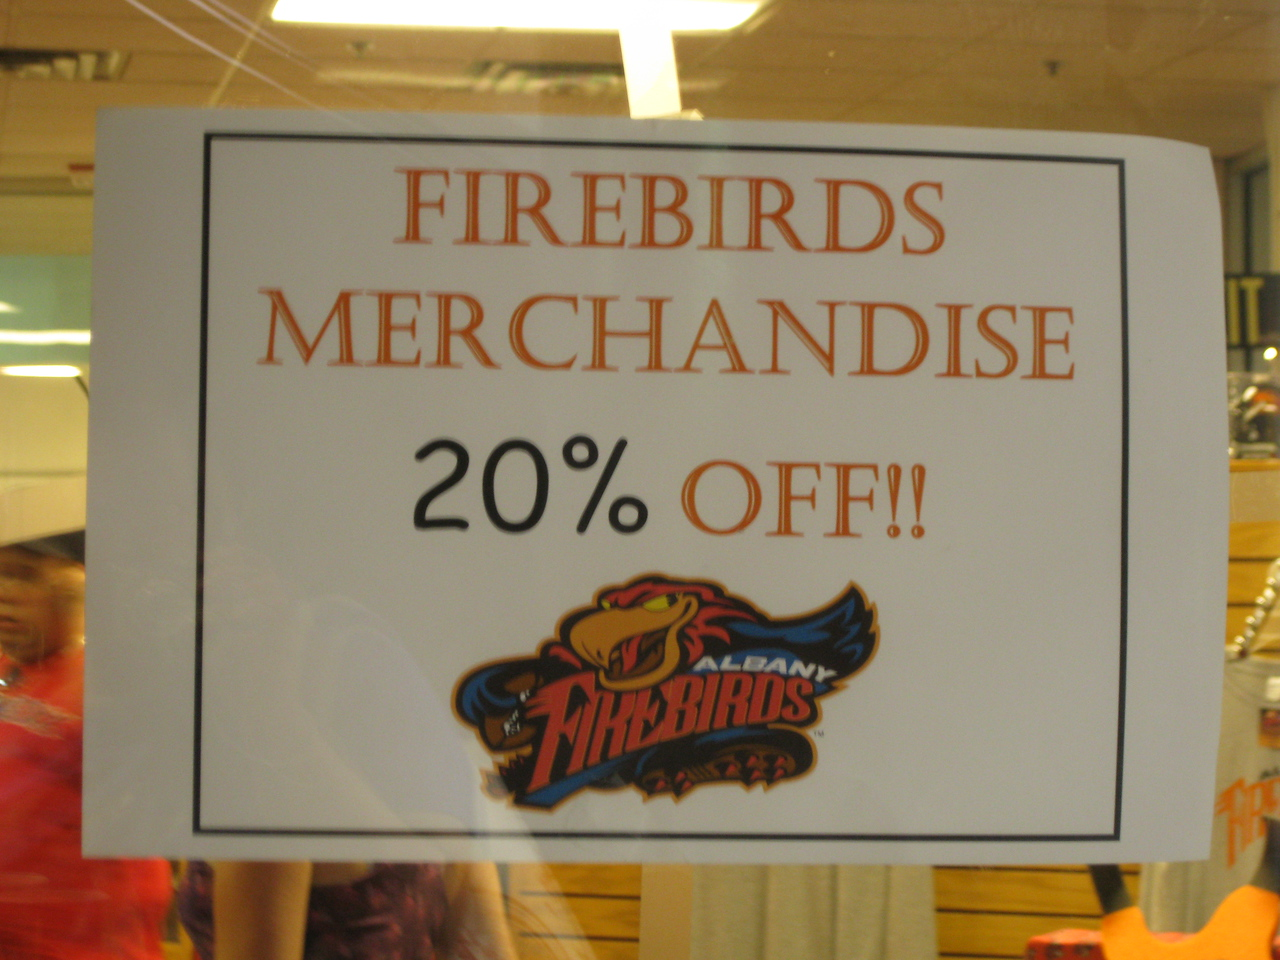 Firebirds merchandise was 20% off.